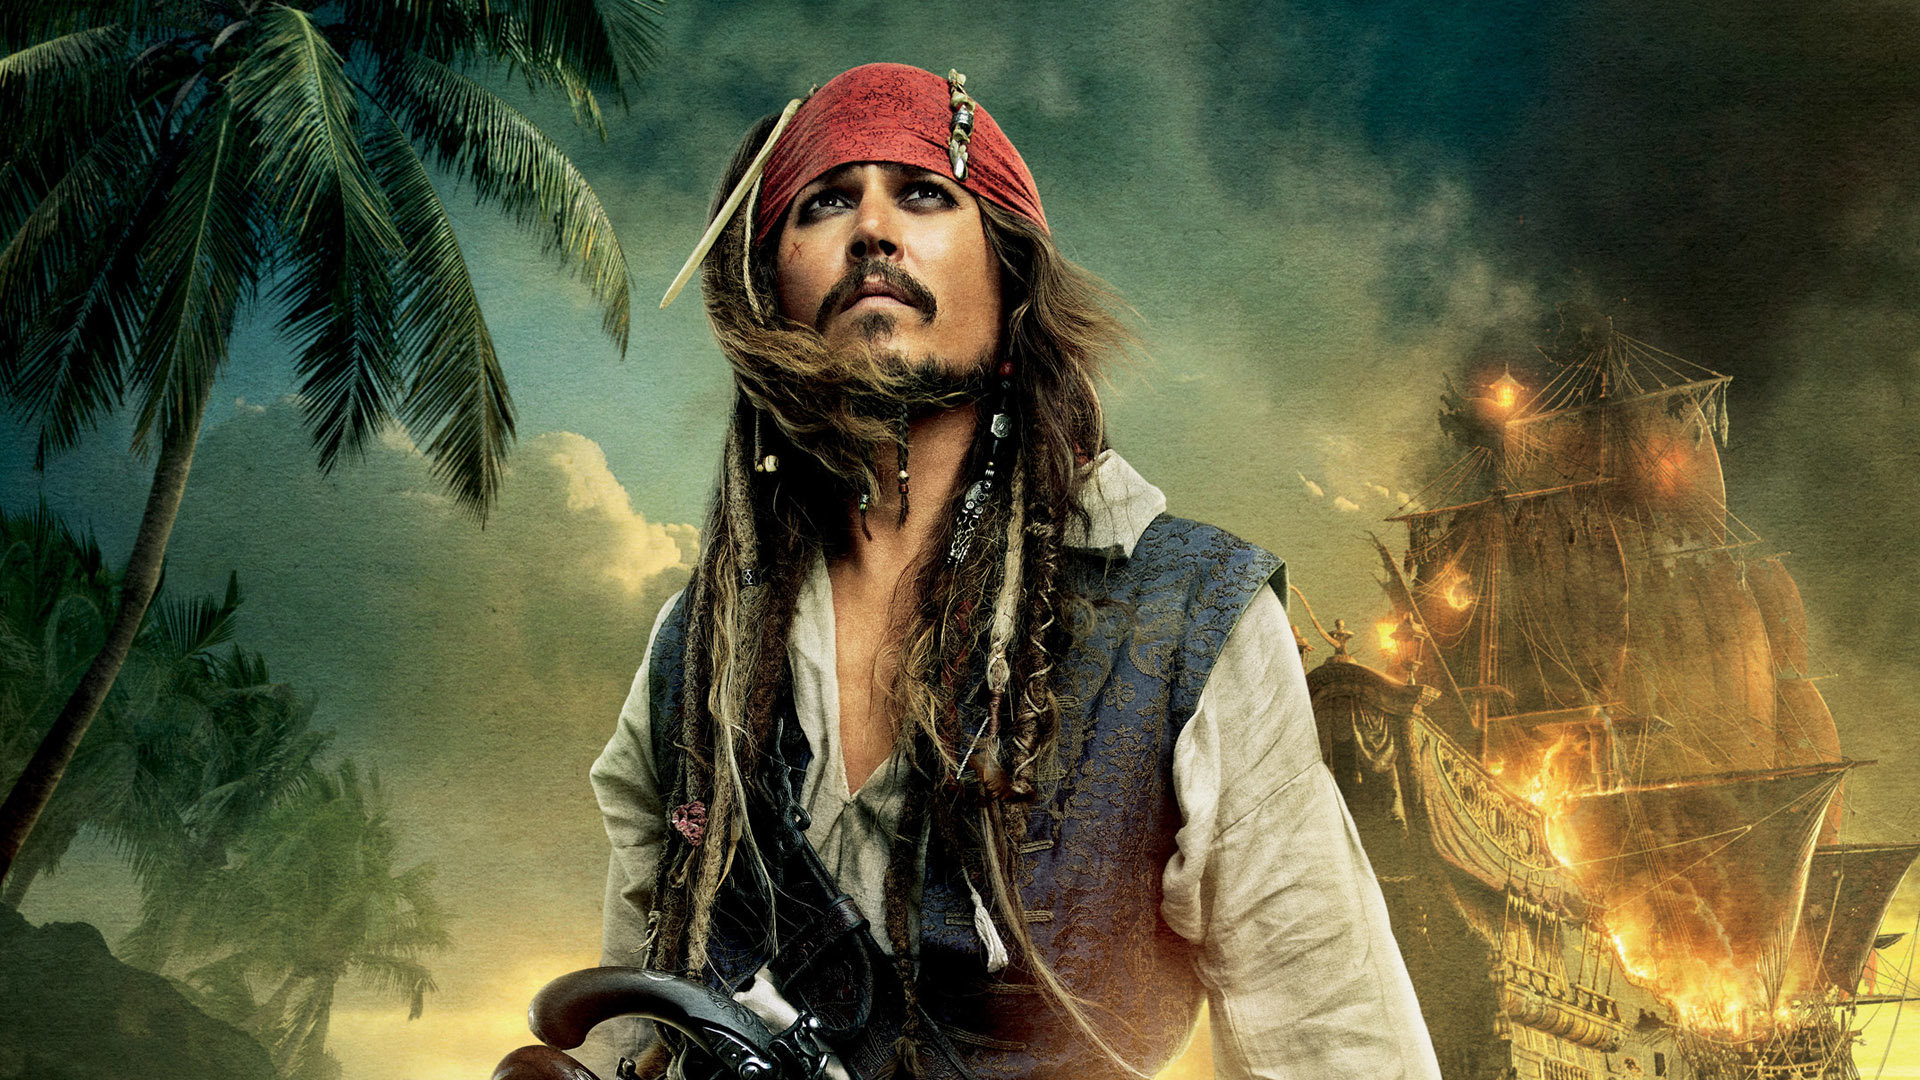 Captain Jack Sparrow Wallpapers 1920x1080 Full HD (1080p